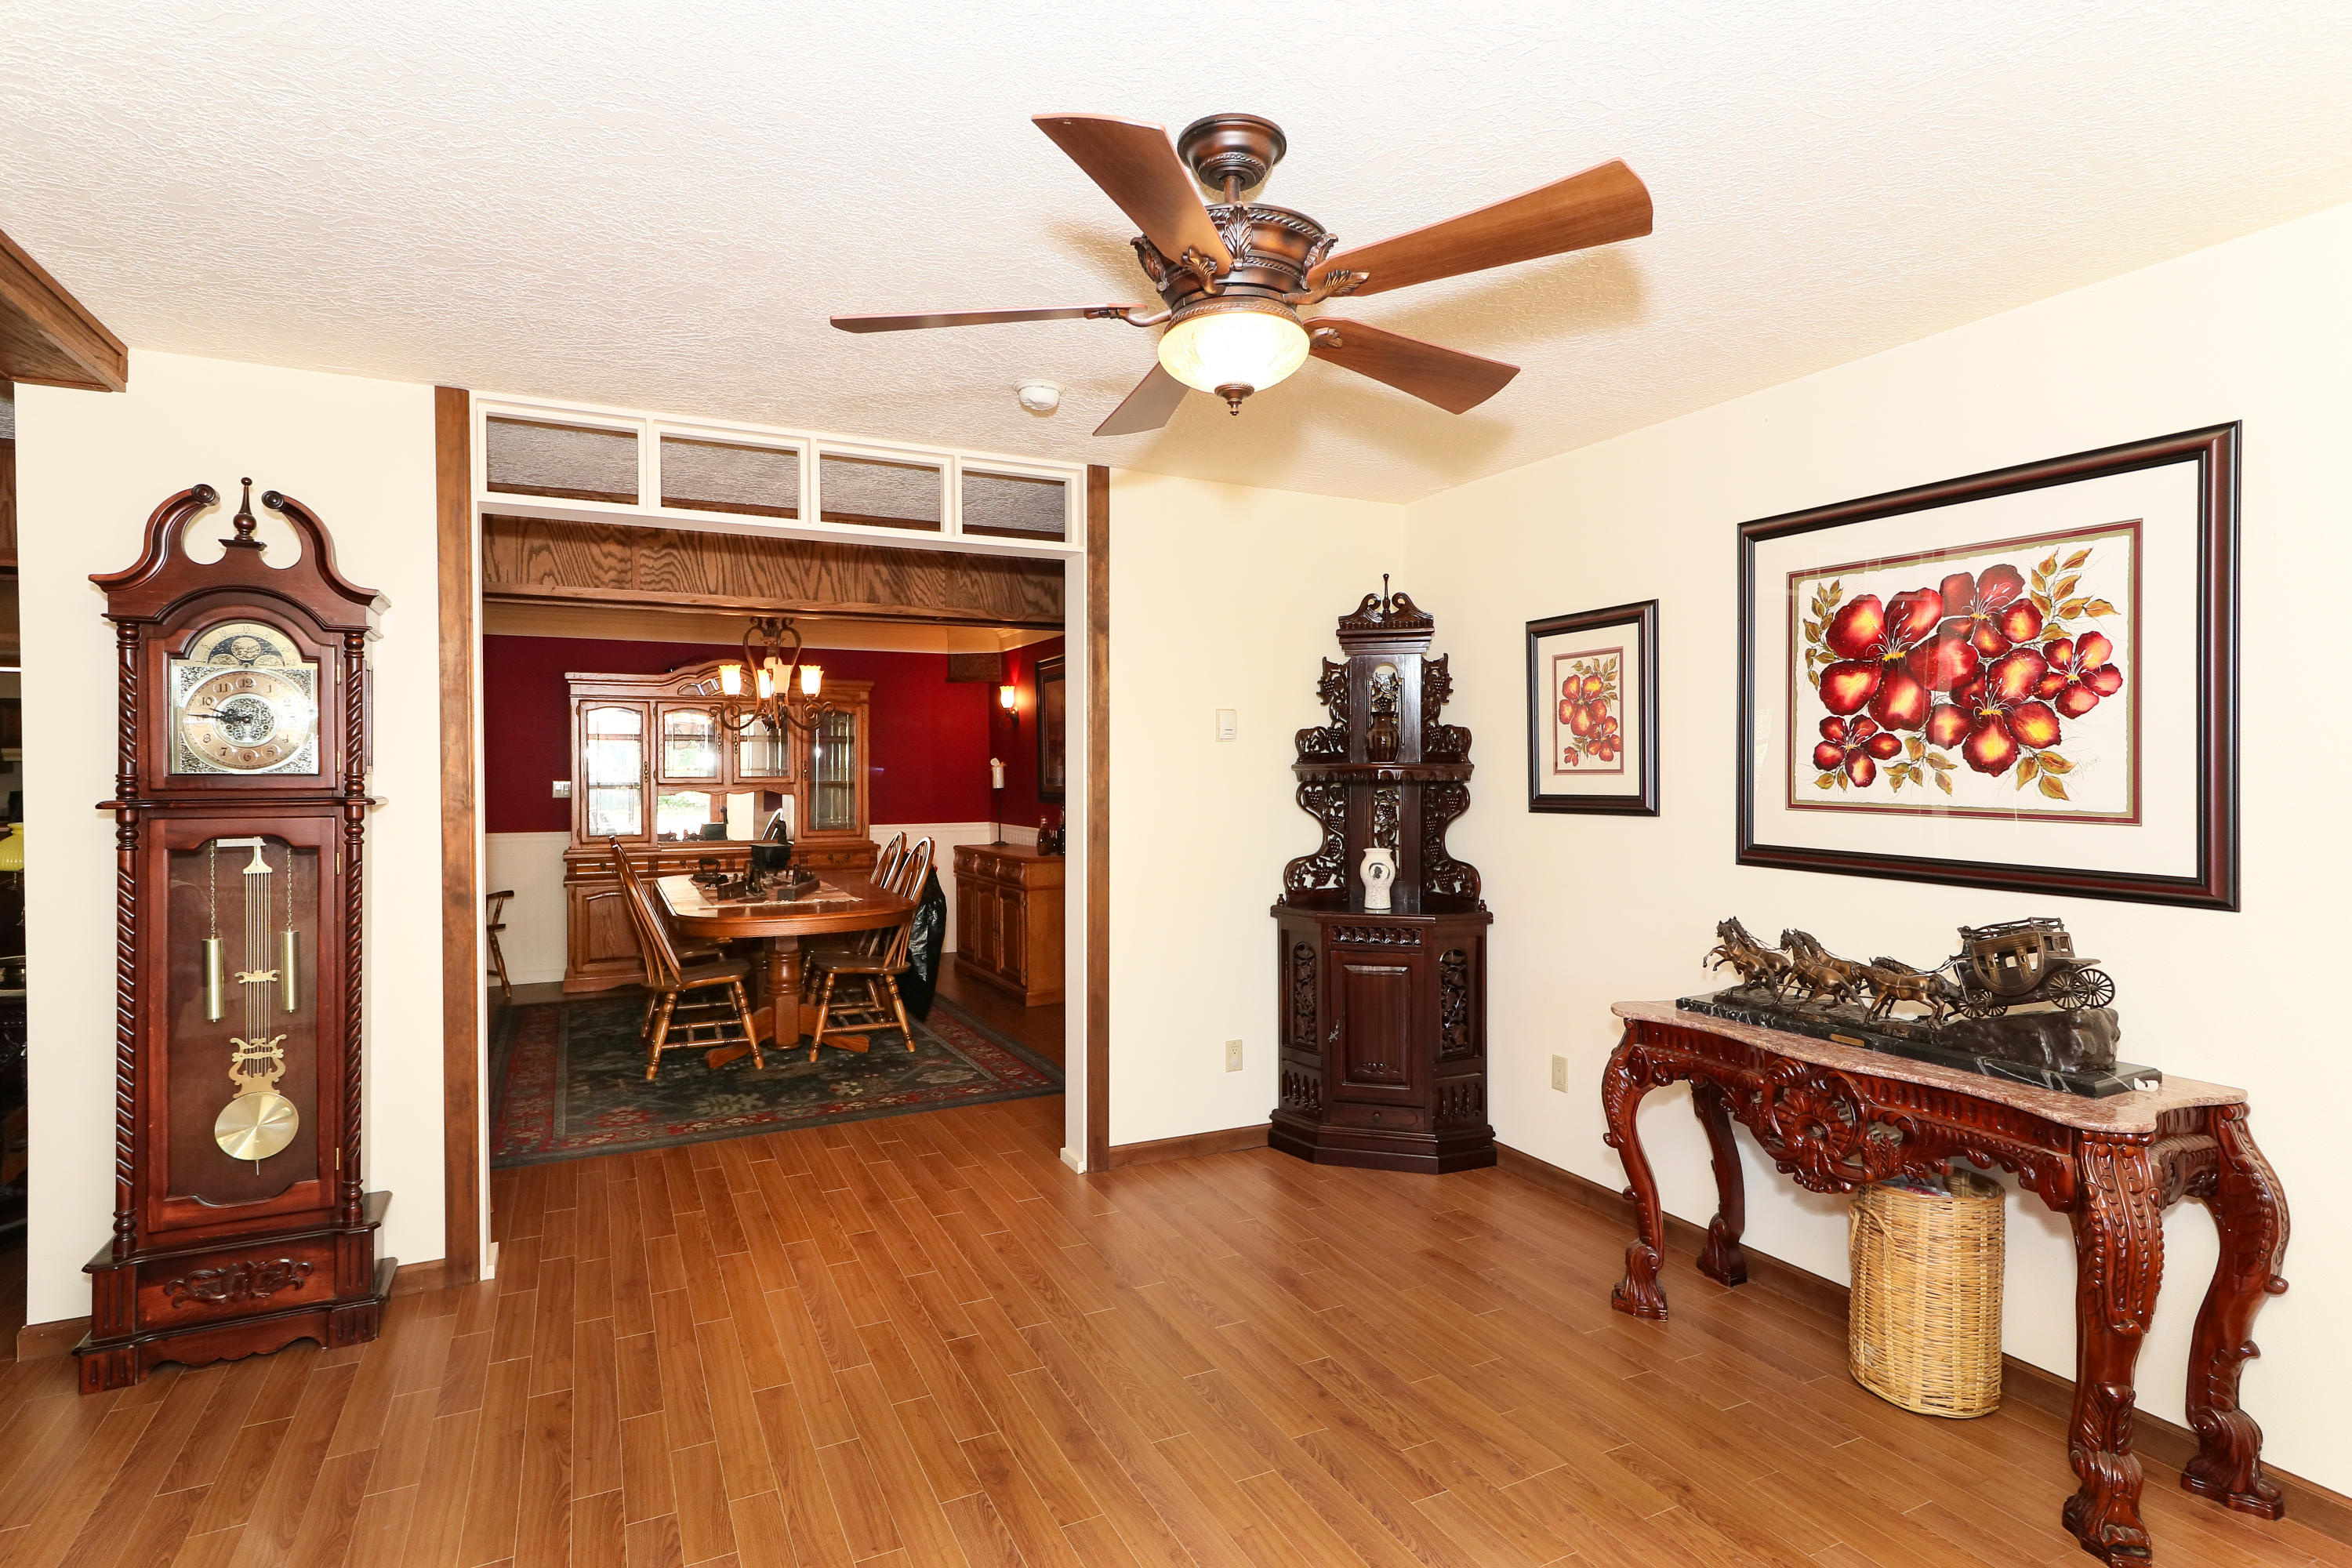 Foyer to Formal Dining Rm